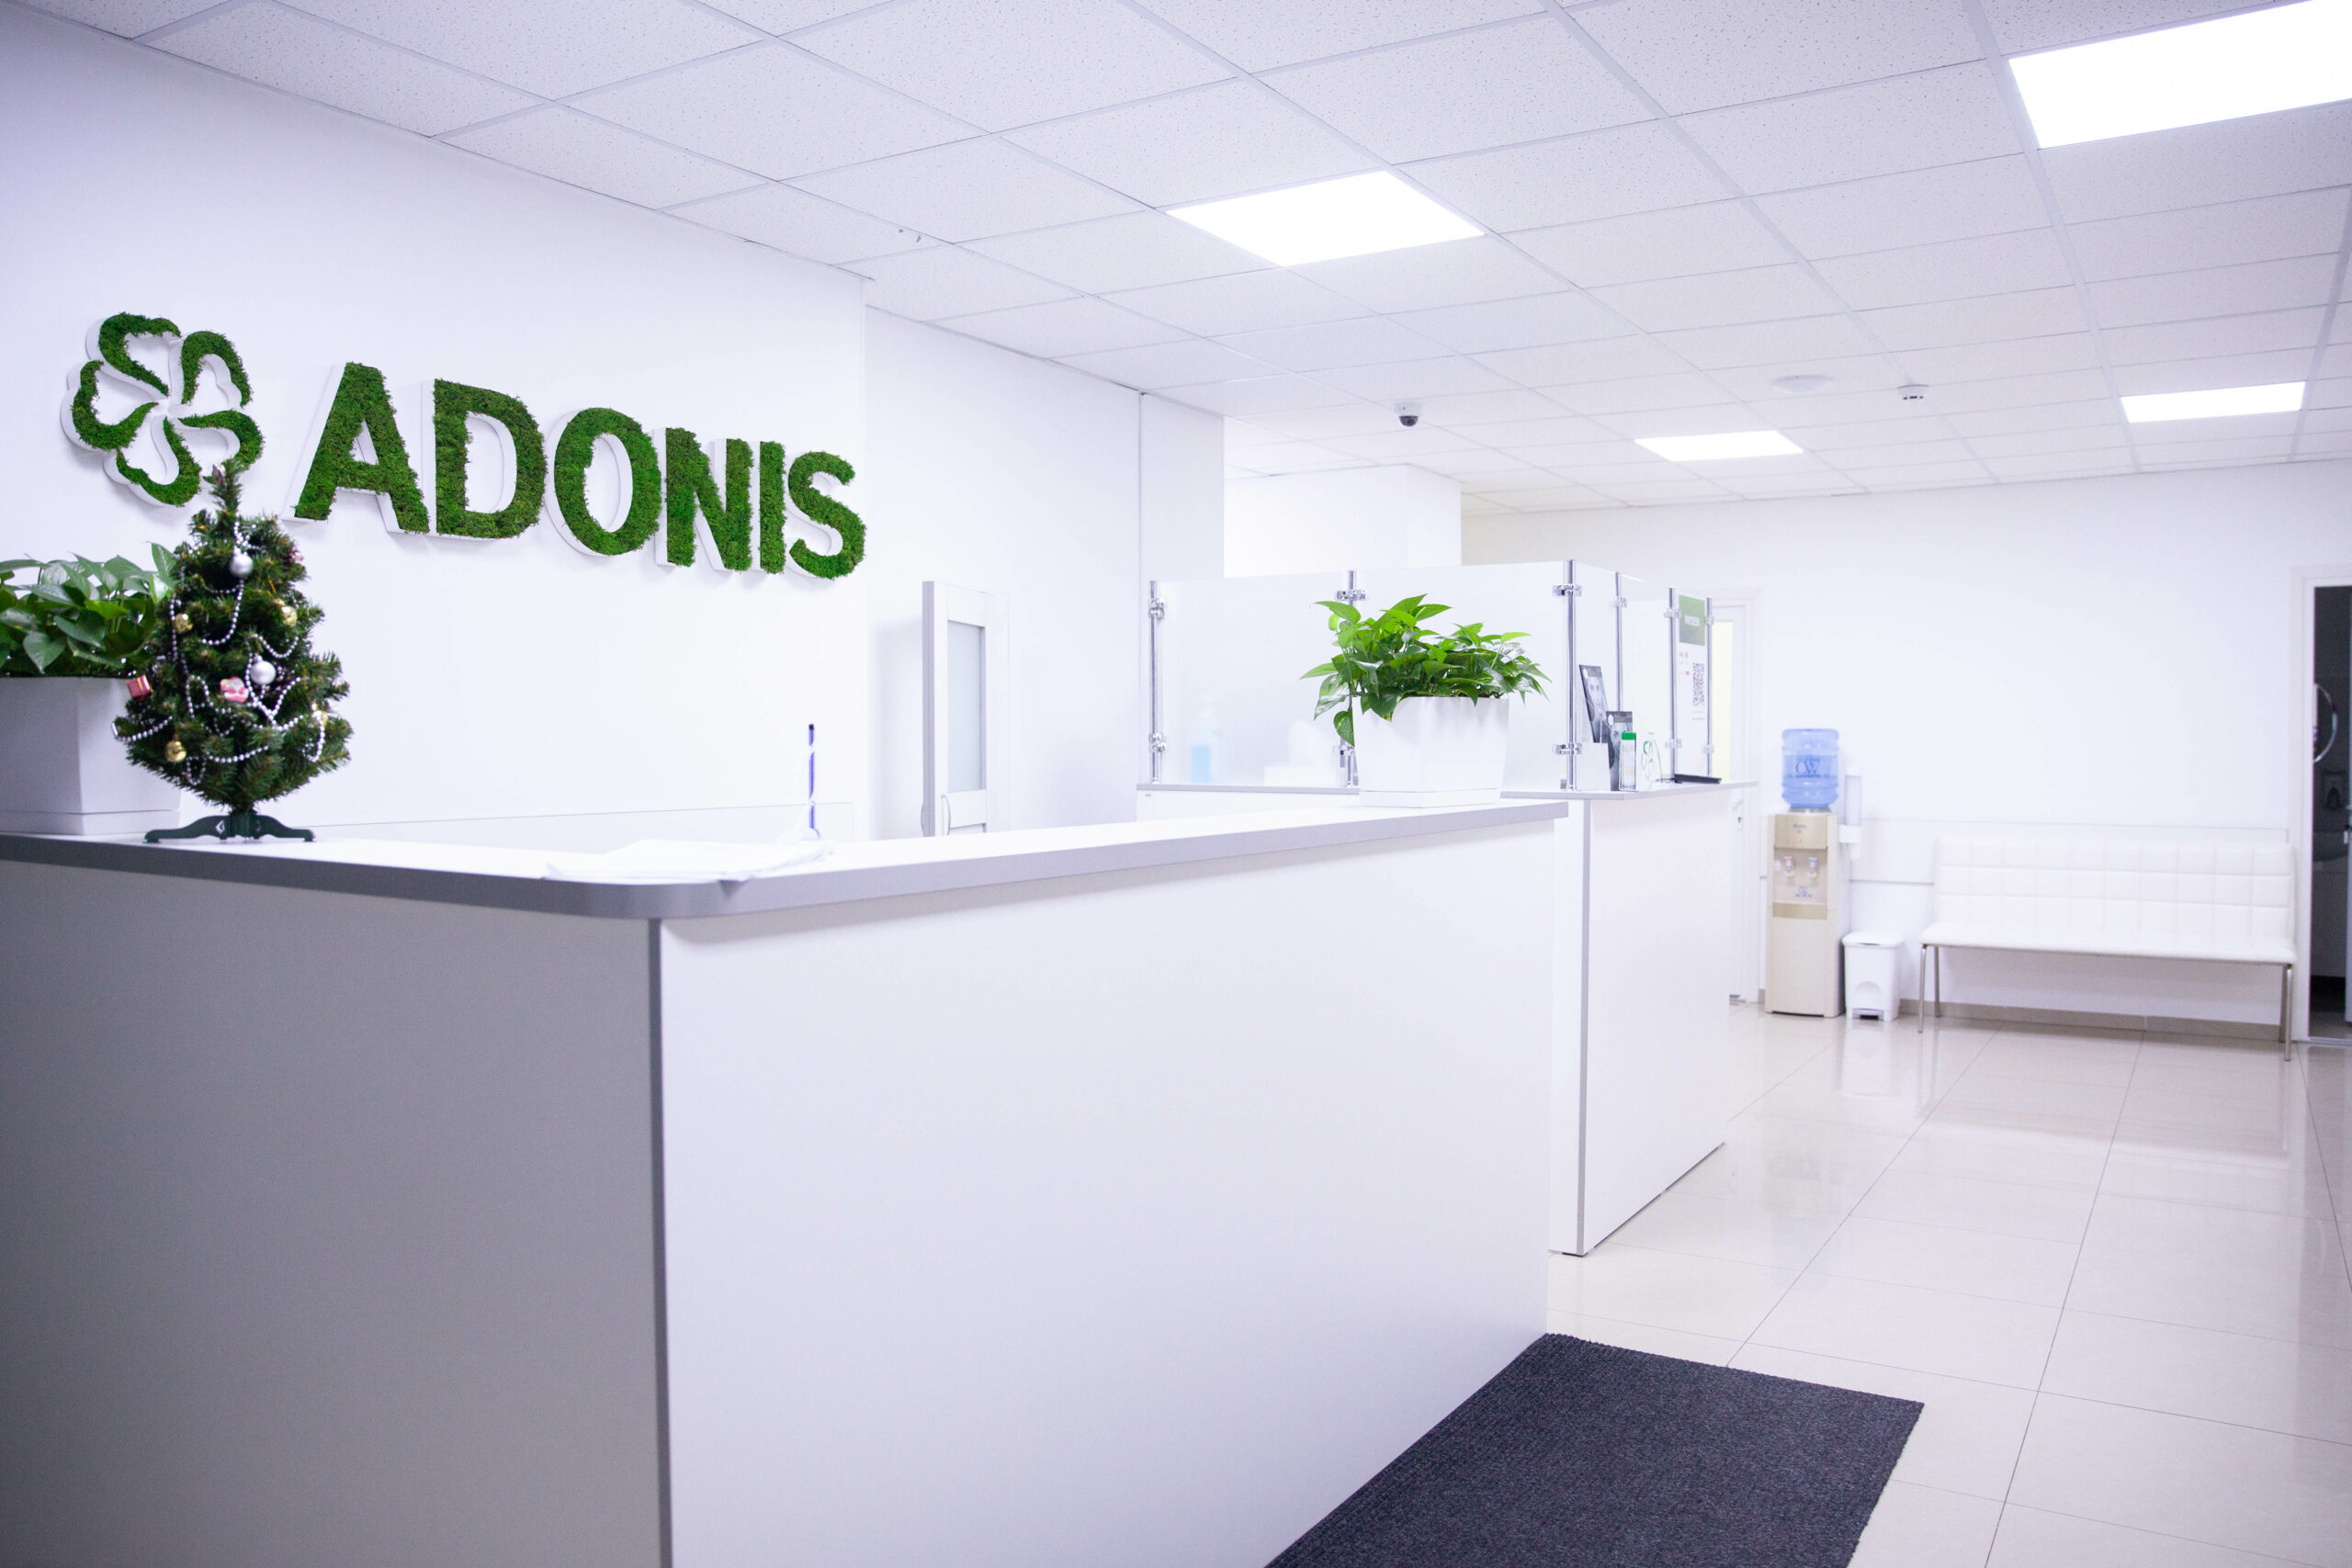 Adonis fertility international in Kiev (Ukraine)